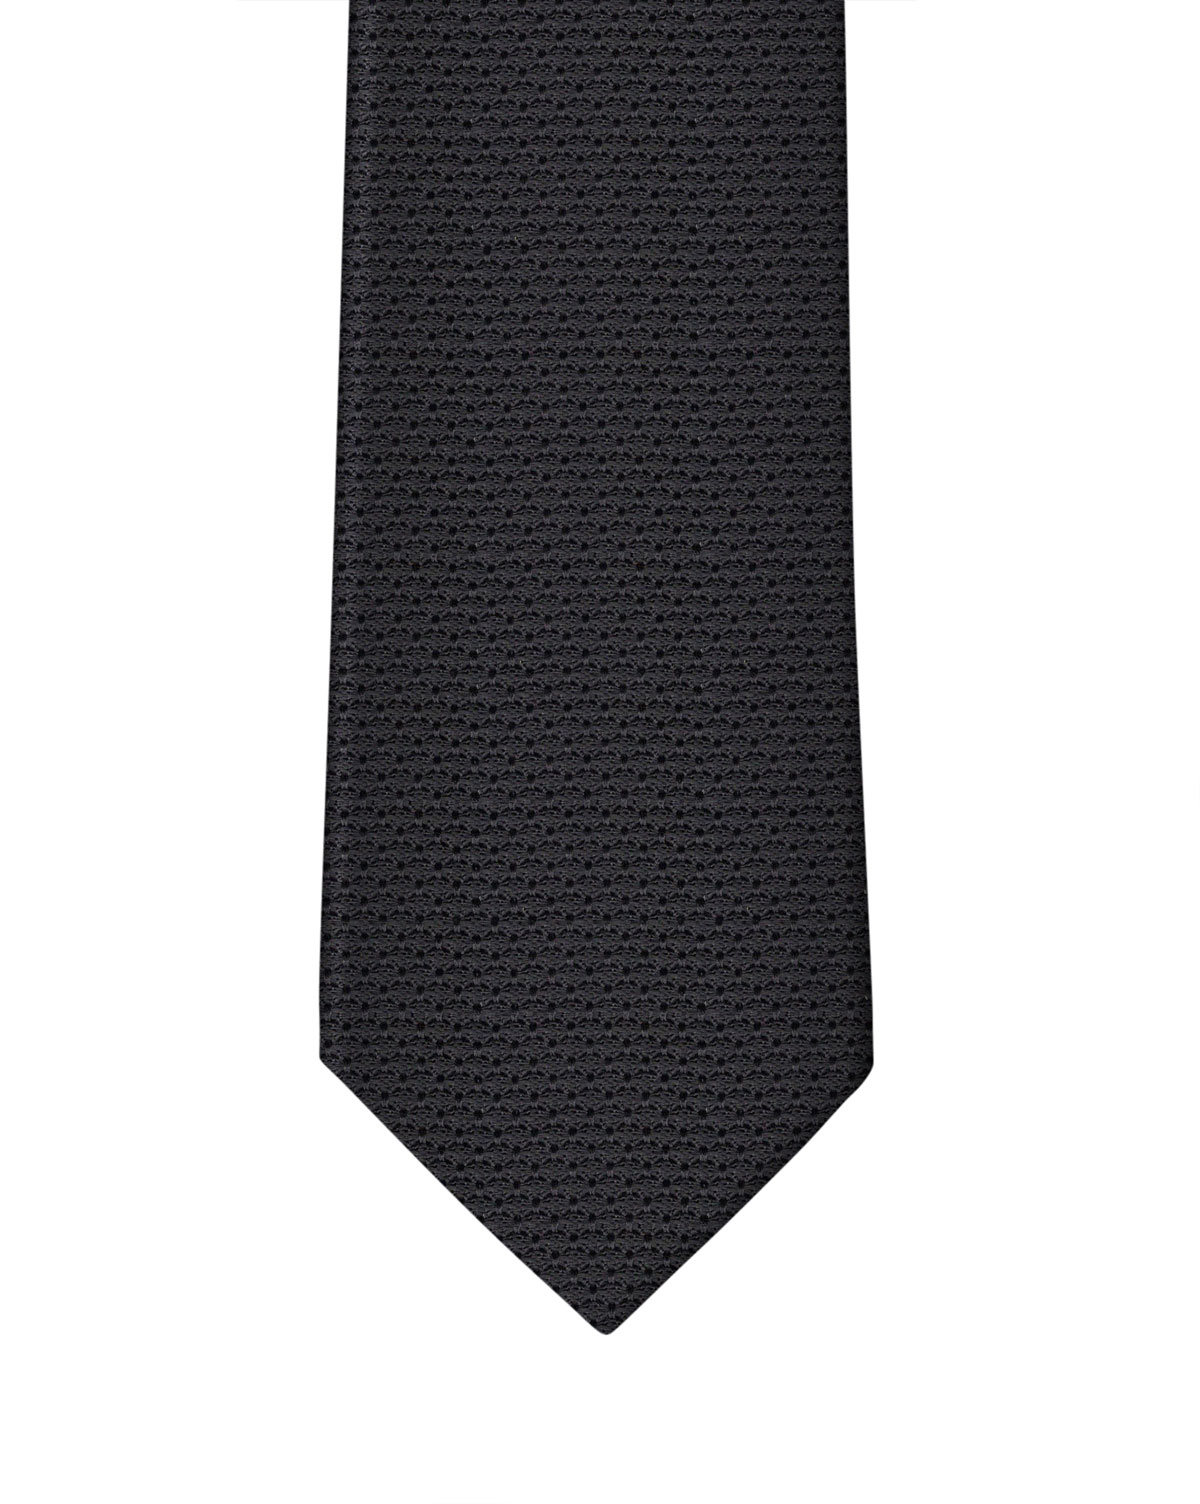 Black Grenadine Necktie